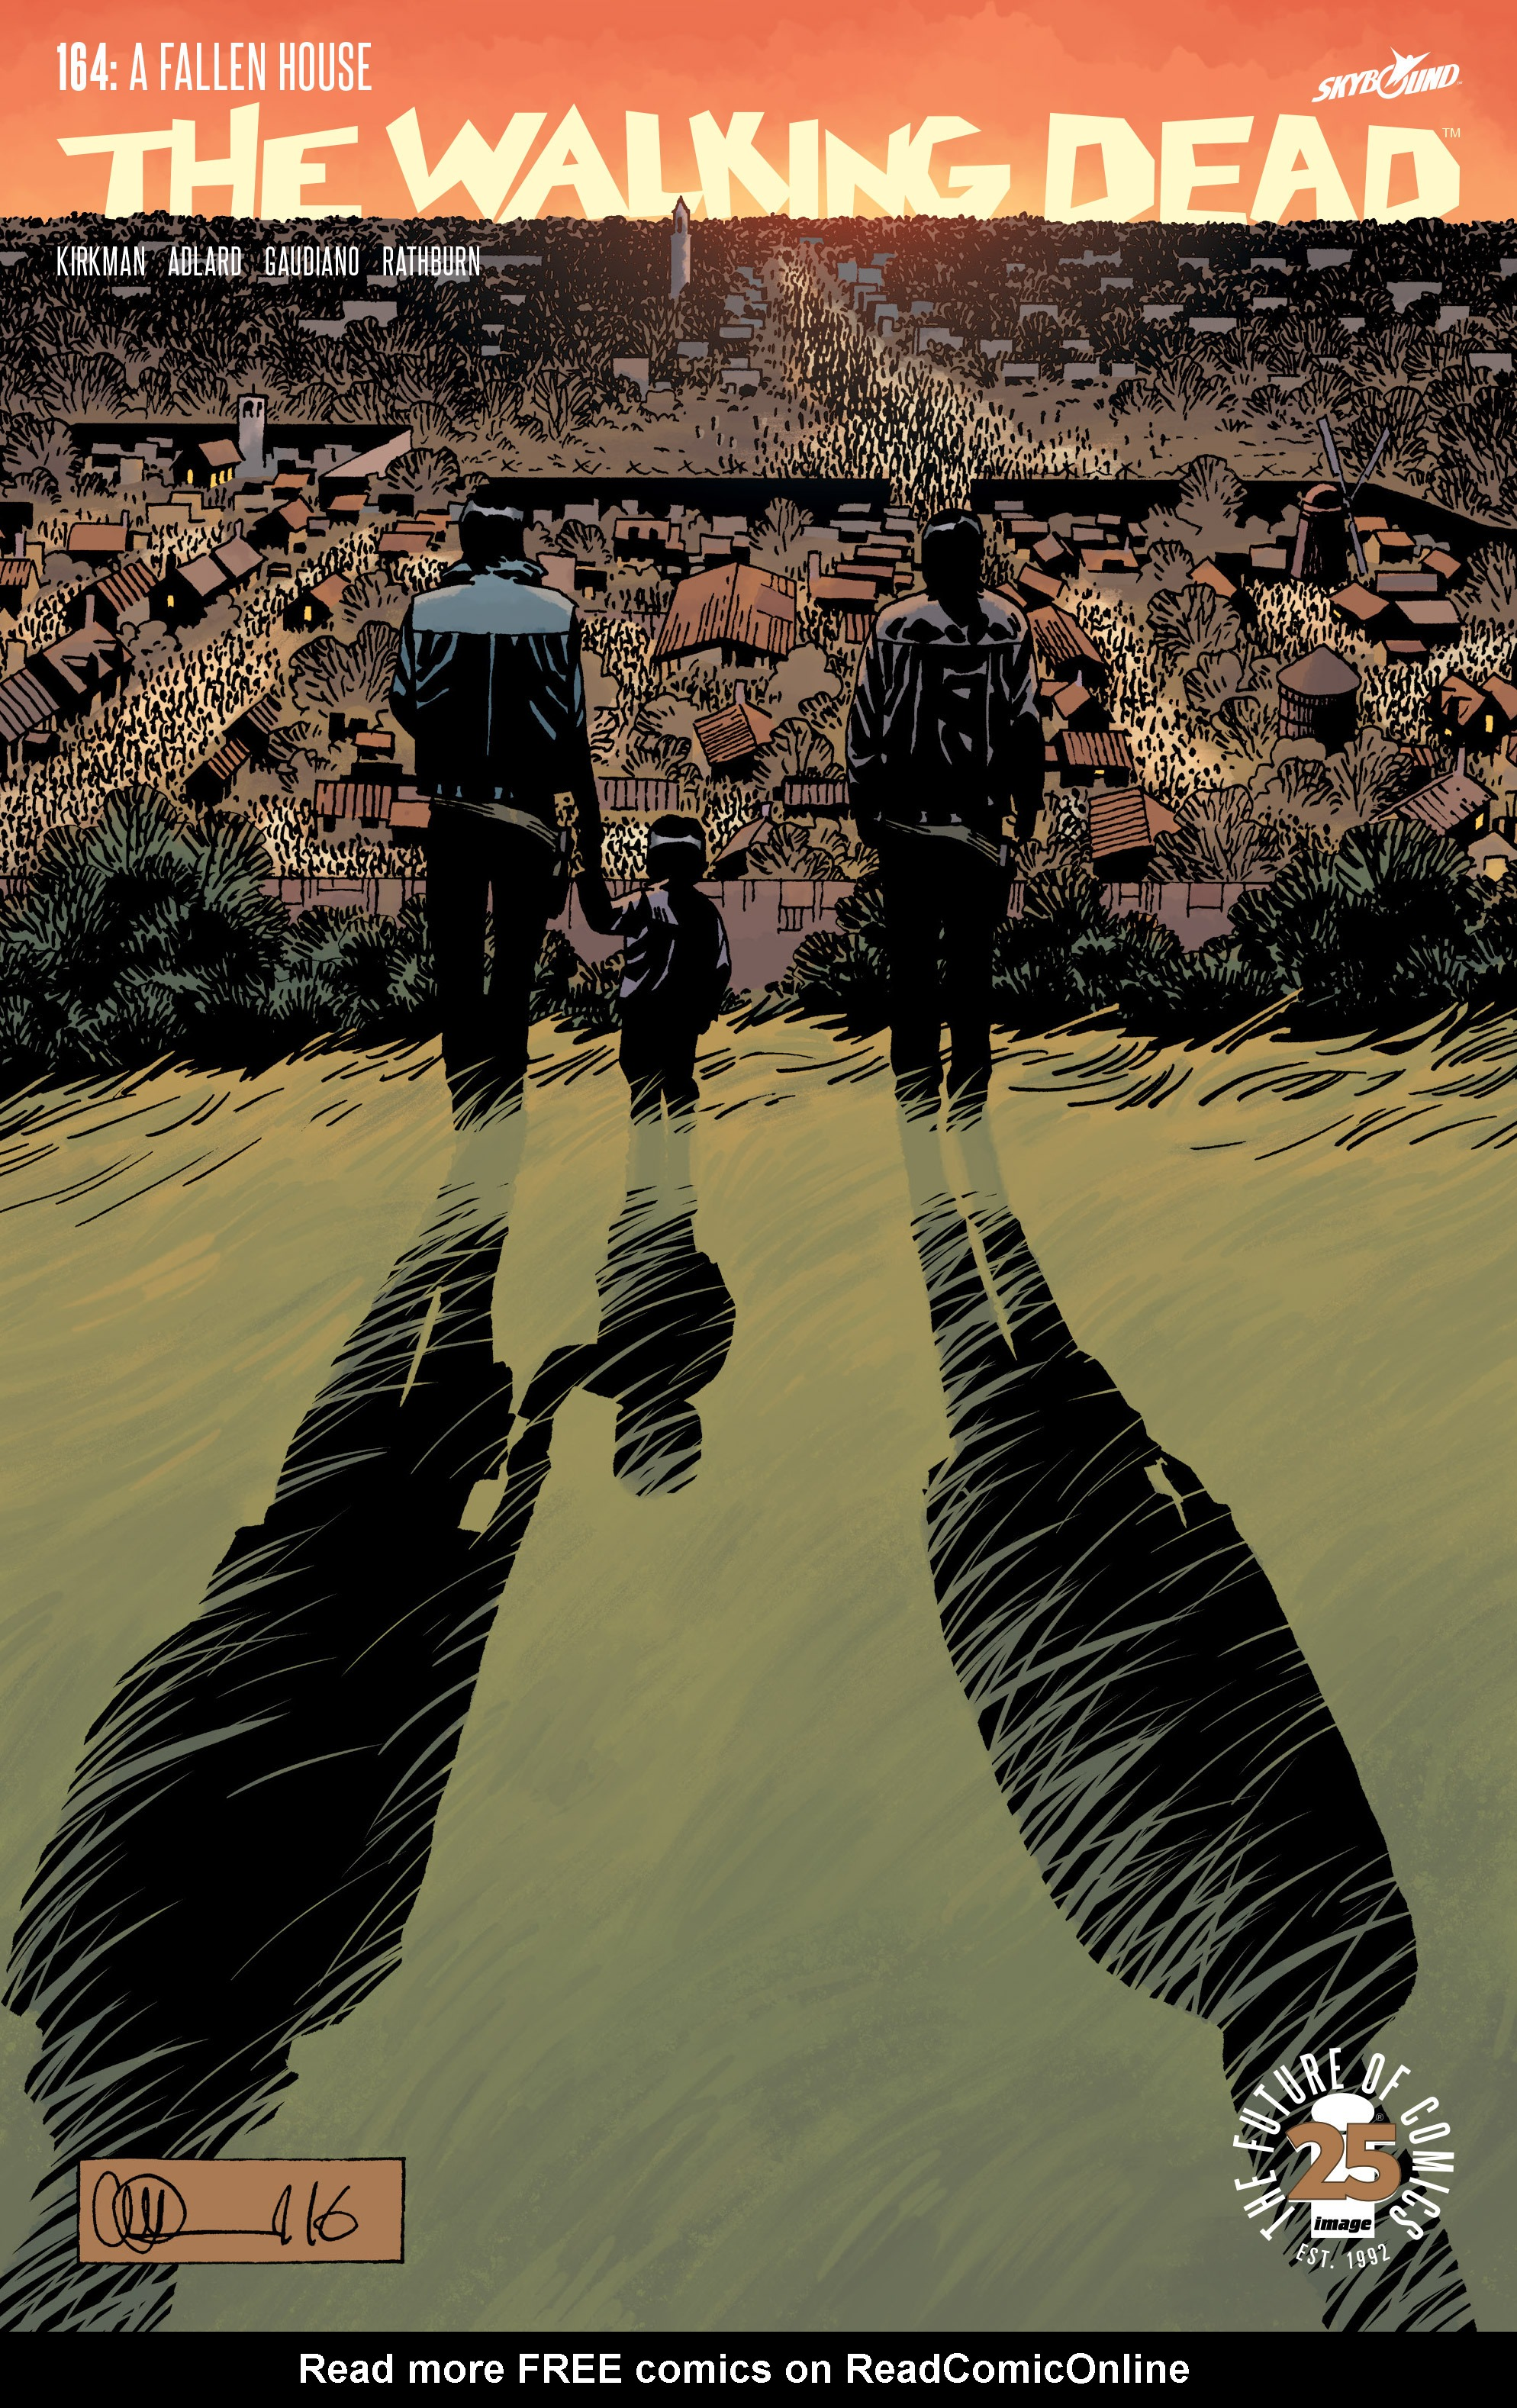 The Walking Dead 164 Page 1